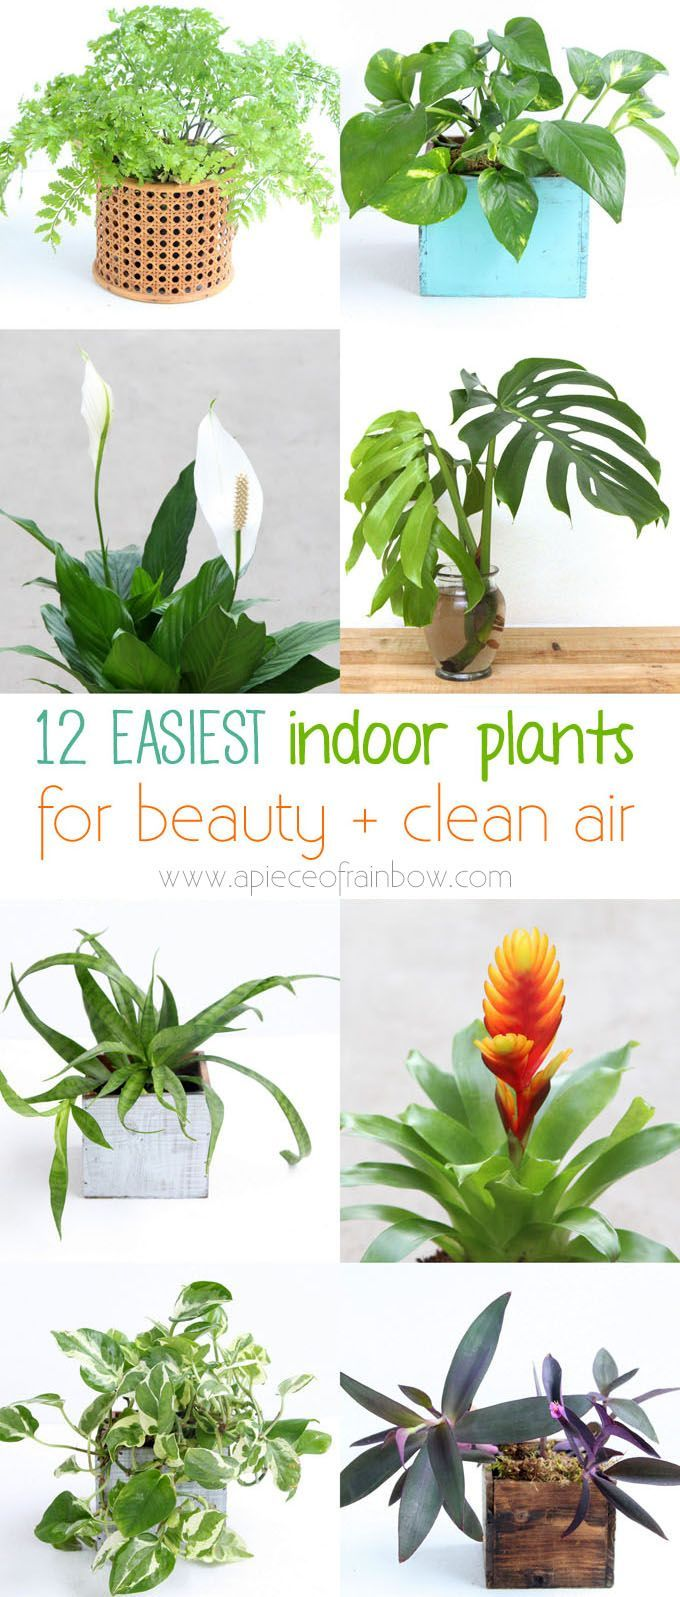 406 best images about eco friendly ideas for the home on for Nasa indoor plant list